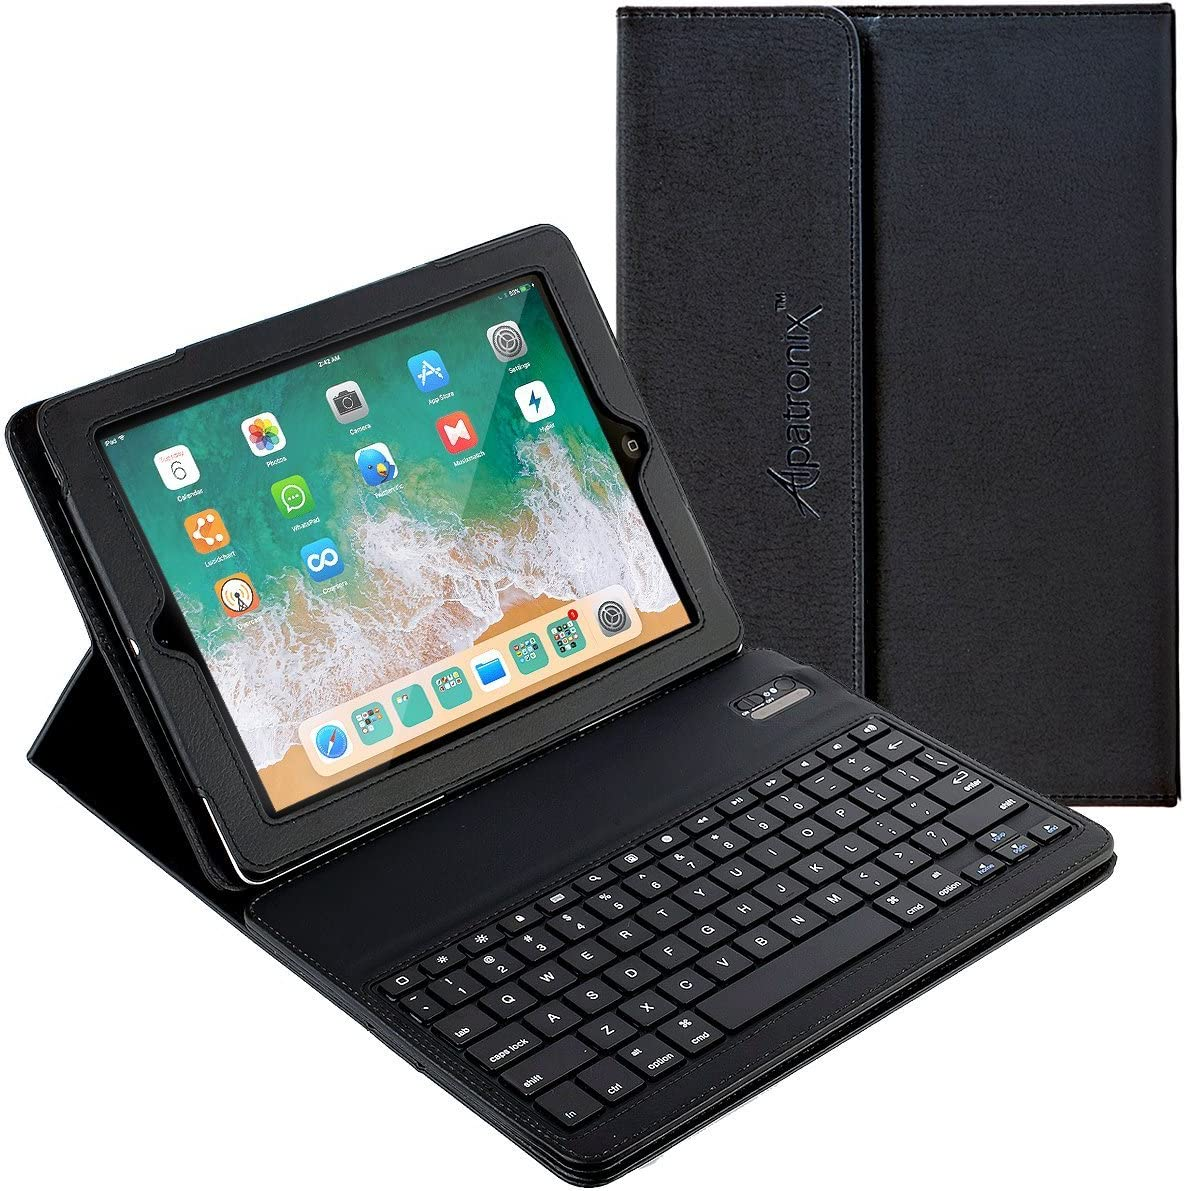 Amazon Com Alpatronix Kx100 Leather Folio Case With Removable Magnetic Bluetooth Wireless Qwerty Keyboard With Stand Auto Wake Sleep Function Compatible For Ipad 2 3 4 Black Computers Accessories